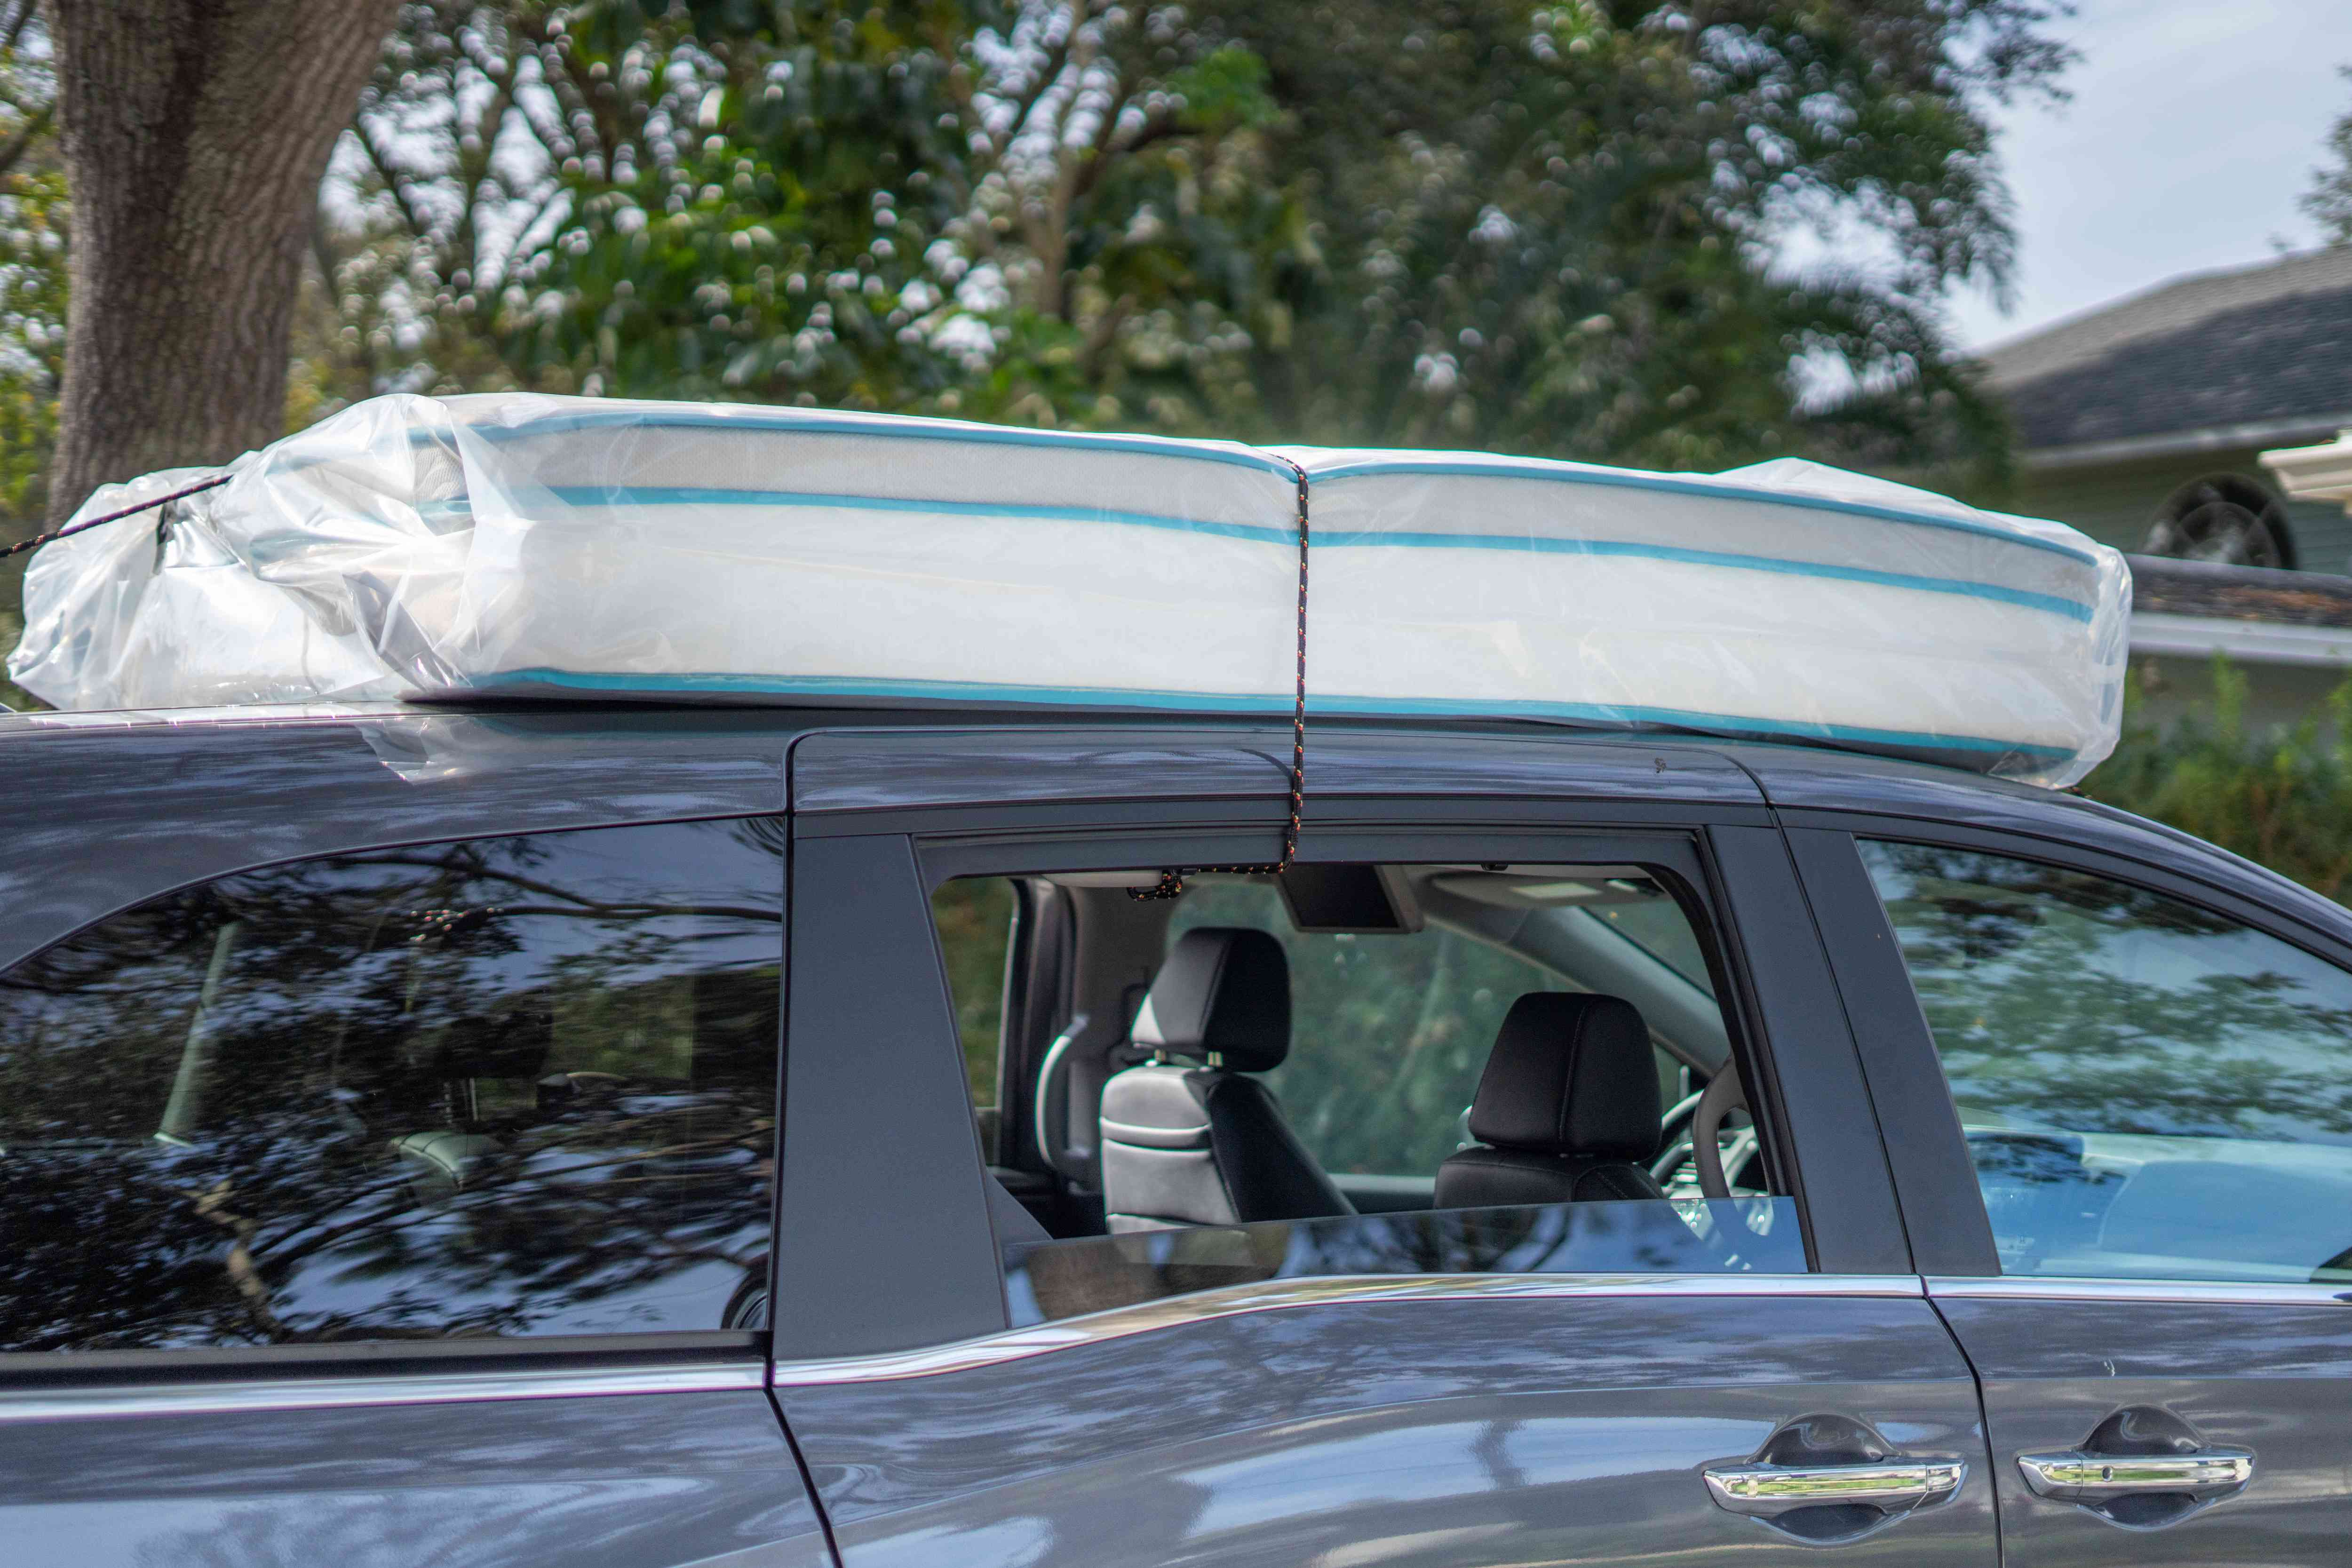 open windows to further secure the mattress to the roof of the car